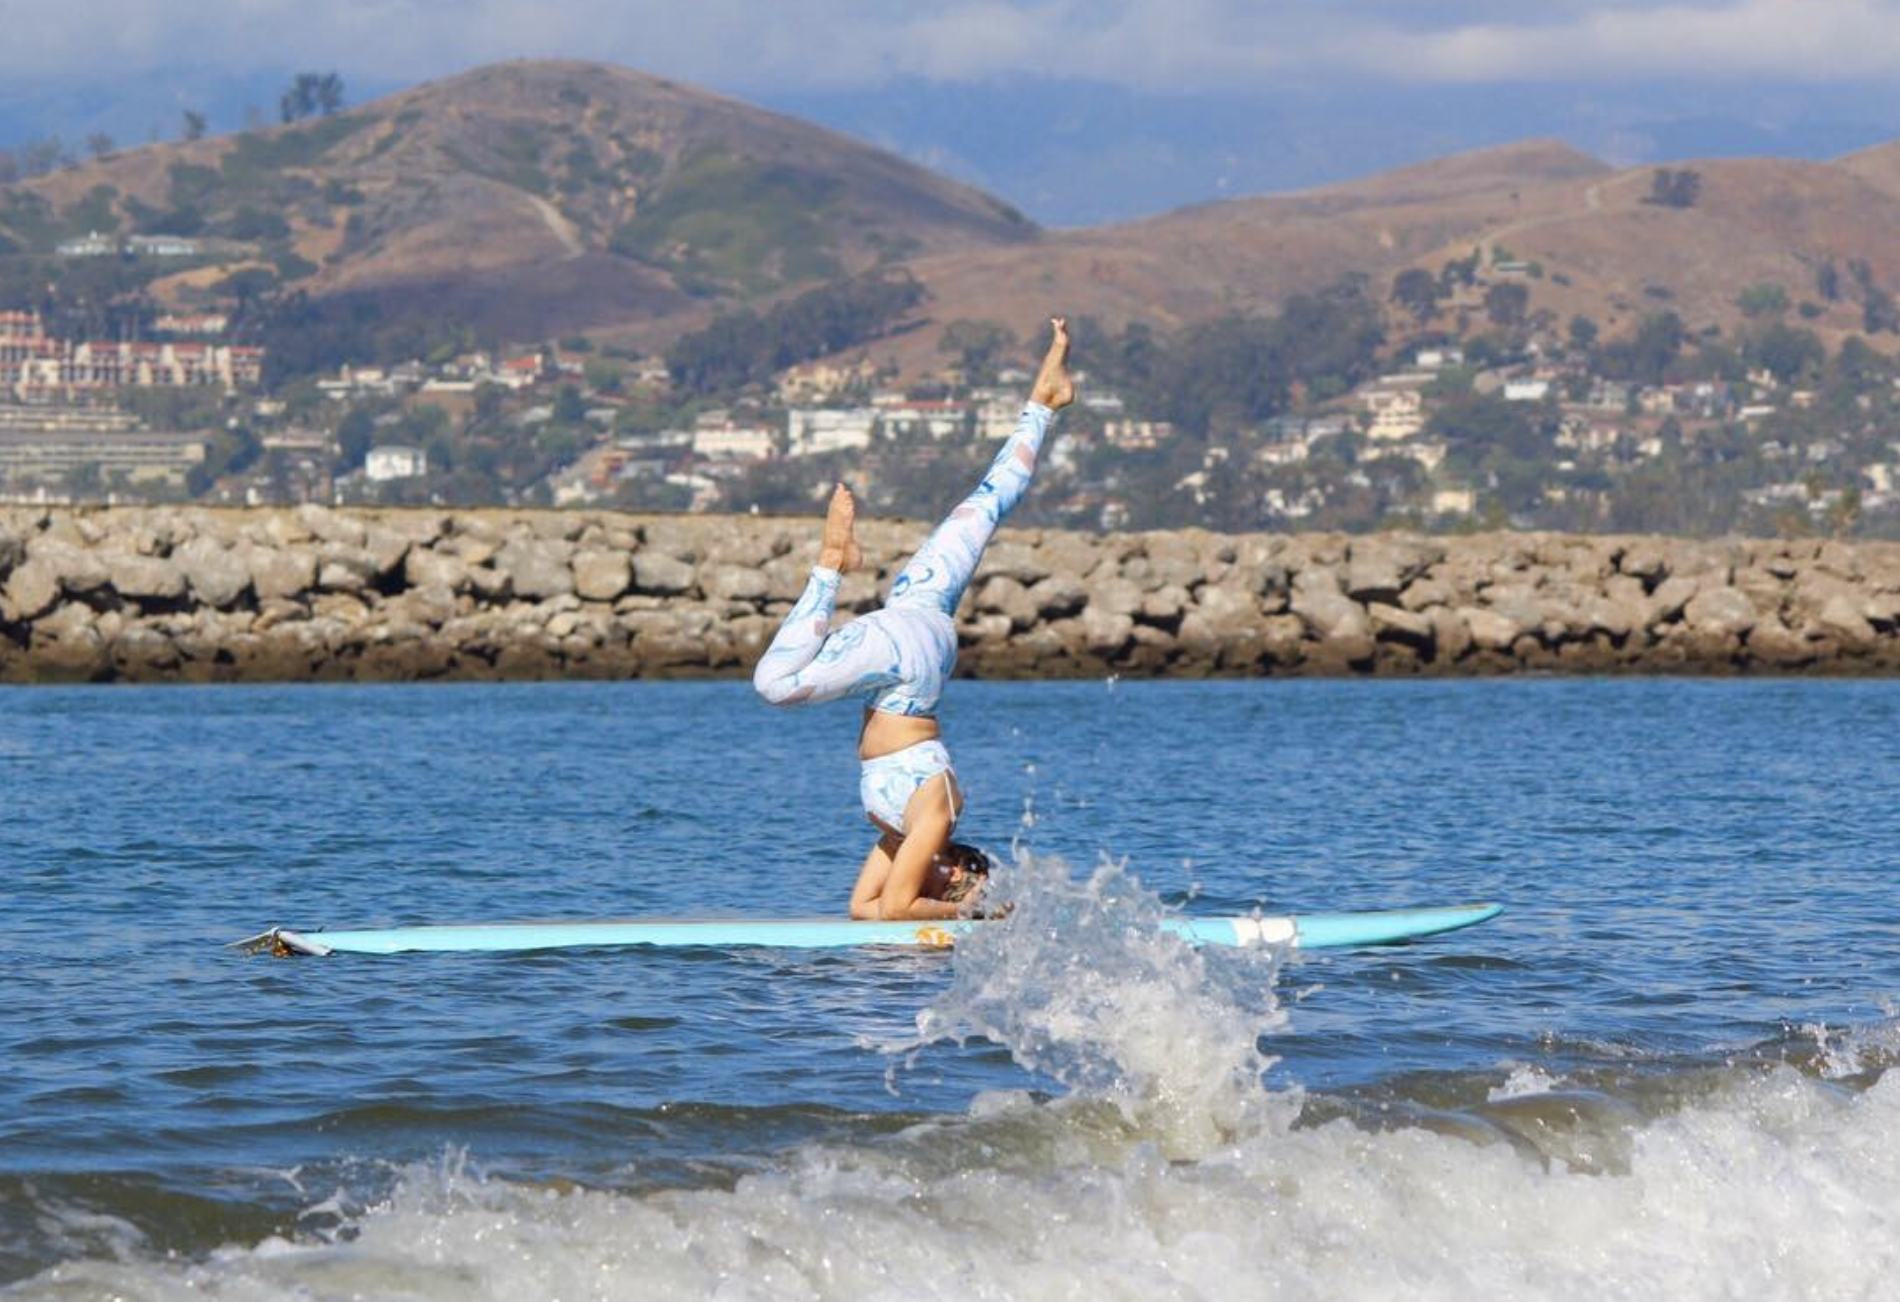 woman holding an upside down yoga pose on a surfboard amongst the rocking of the waves under her board